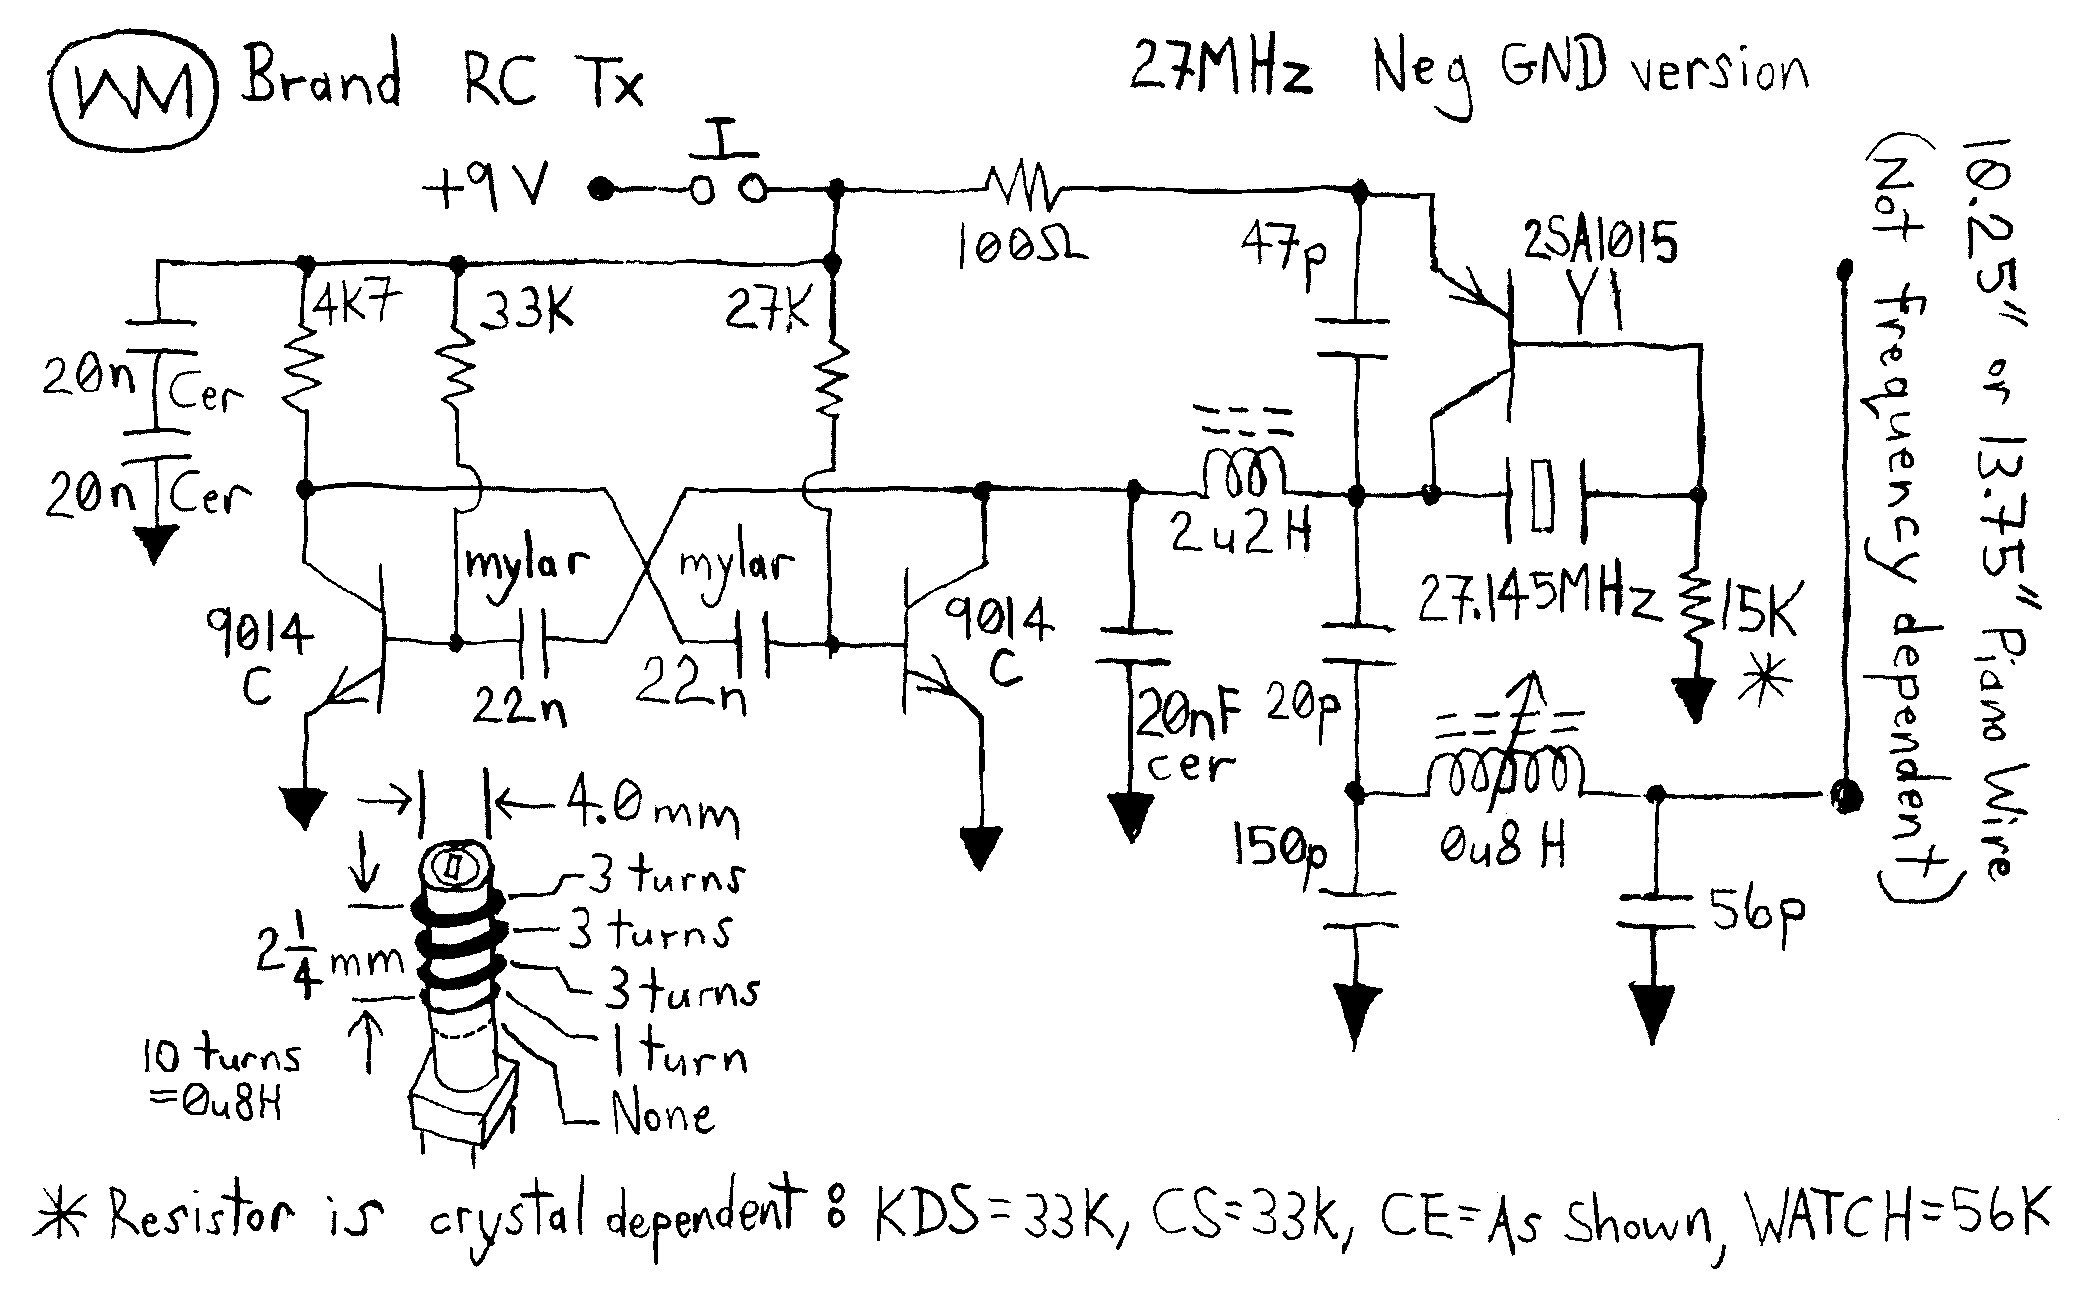 Circuit Diagram Of Remote Control Car Car Diagram Remotetoycarassembly Make Remote Controlled toy Car Of Circuit Diagram Of Remote Control Car